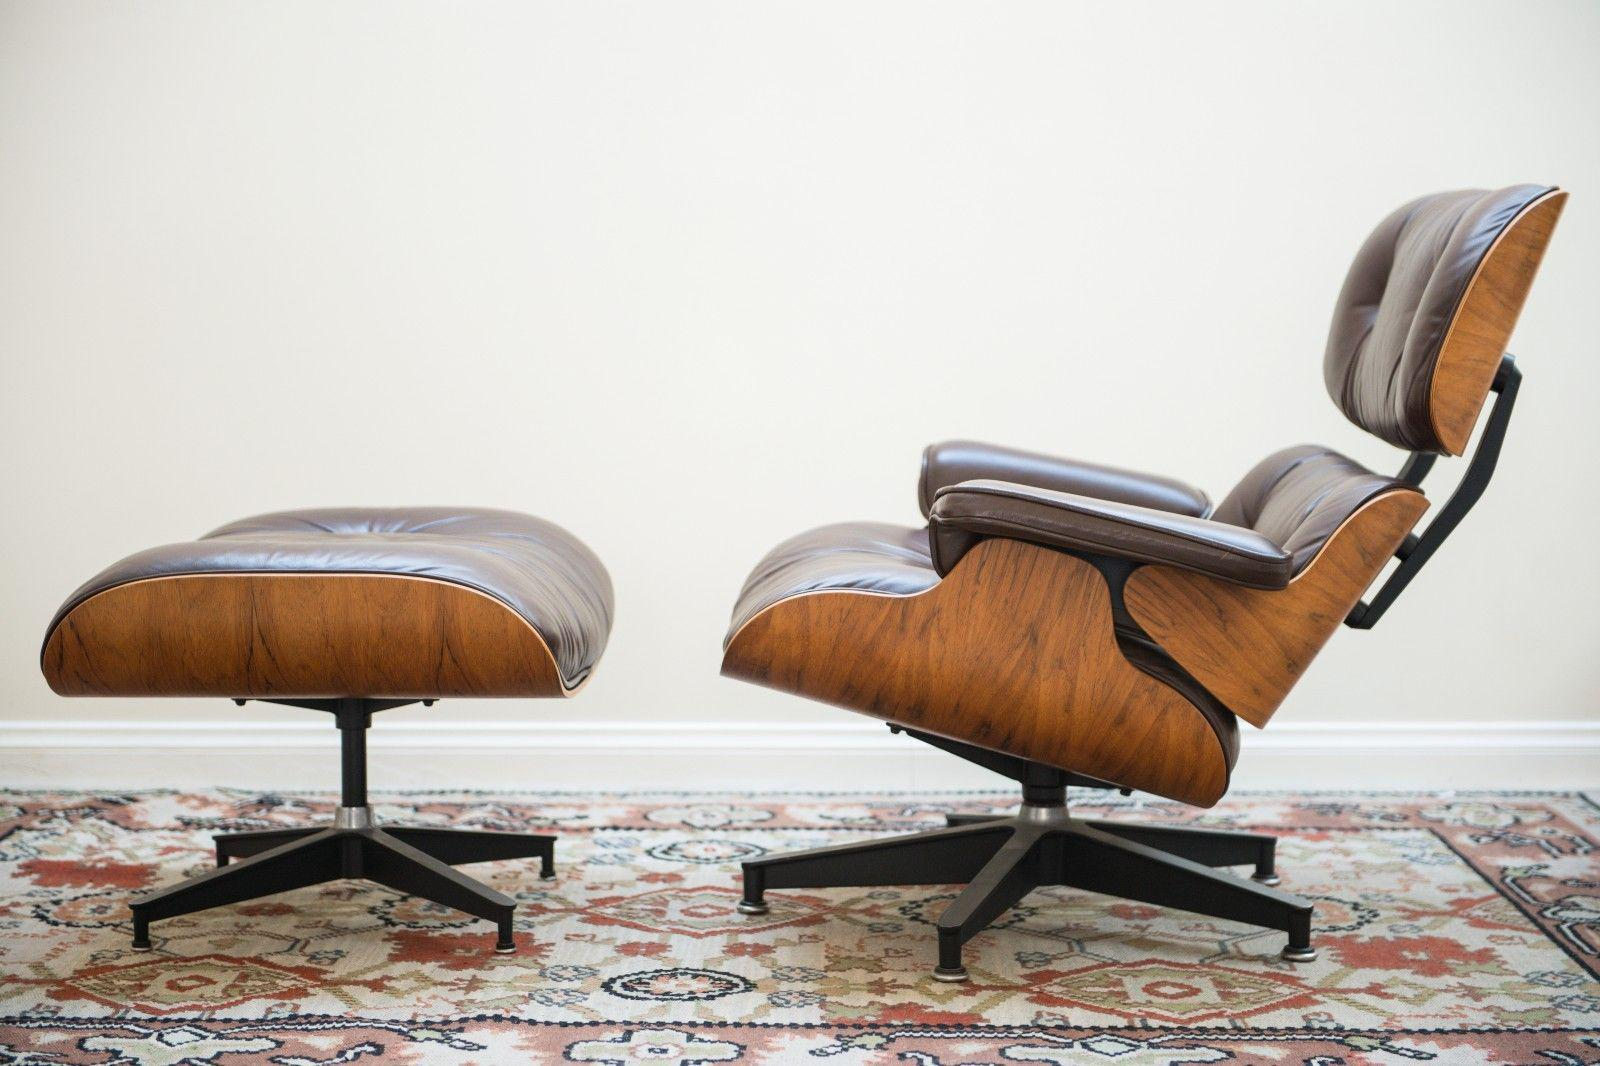 Genial 1976 Charles And Ray Eames 670 Rosewood Lounge Chair And Matching 671  Ottoman Manufactured By Herman